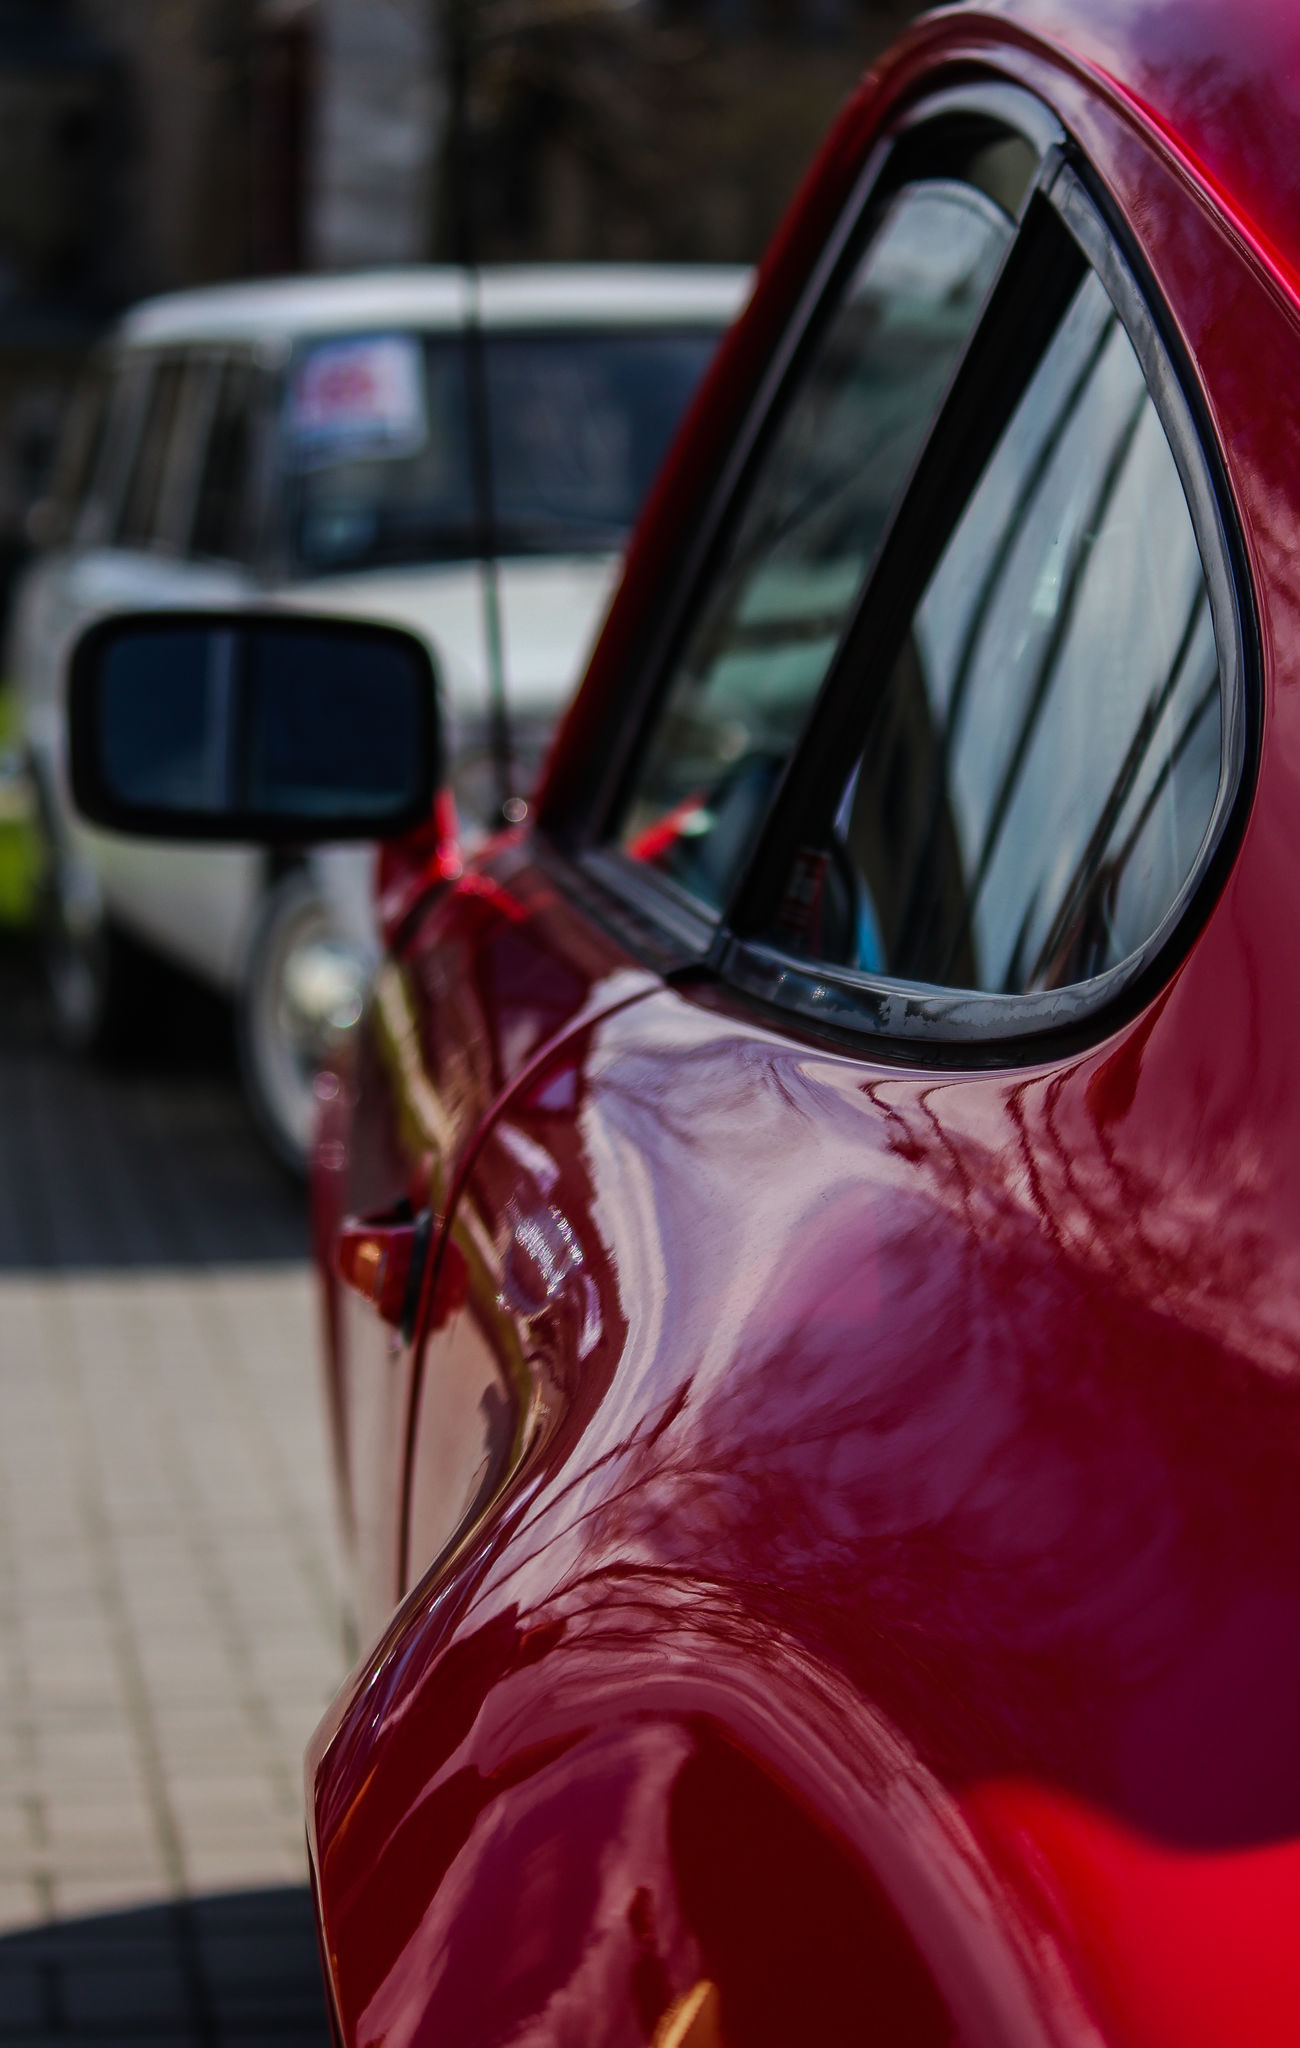 Car Transportation Mode Of Transport Reflection Land Vehicle Vehicle Mirror Motor Vehicle Stationary Side-view Mirror City Close-up Outdoors No People Day Porche